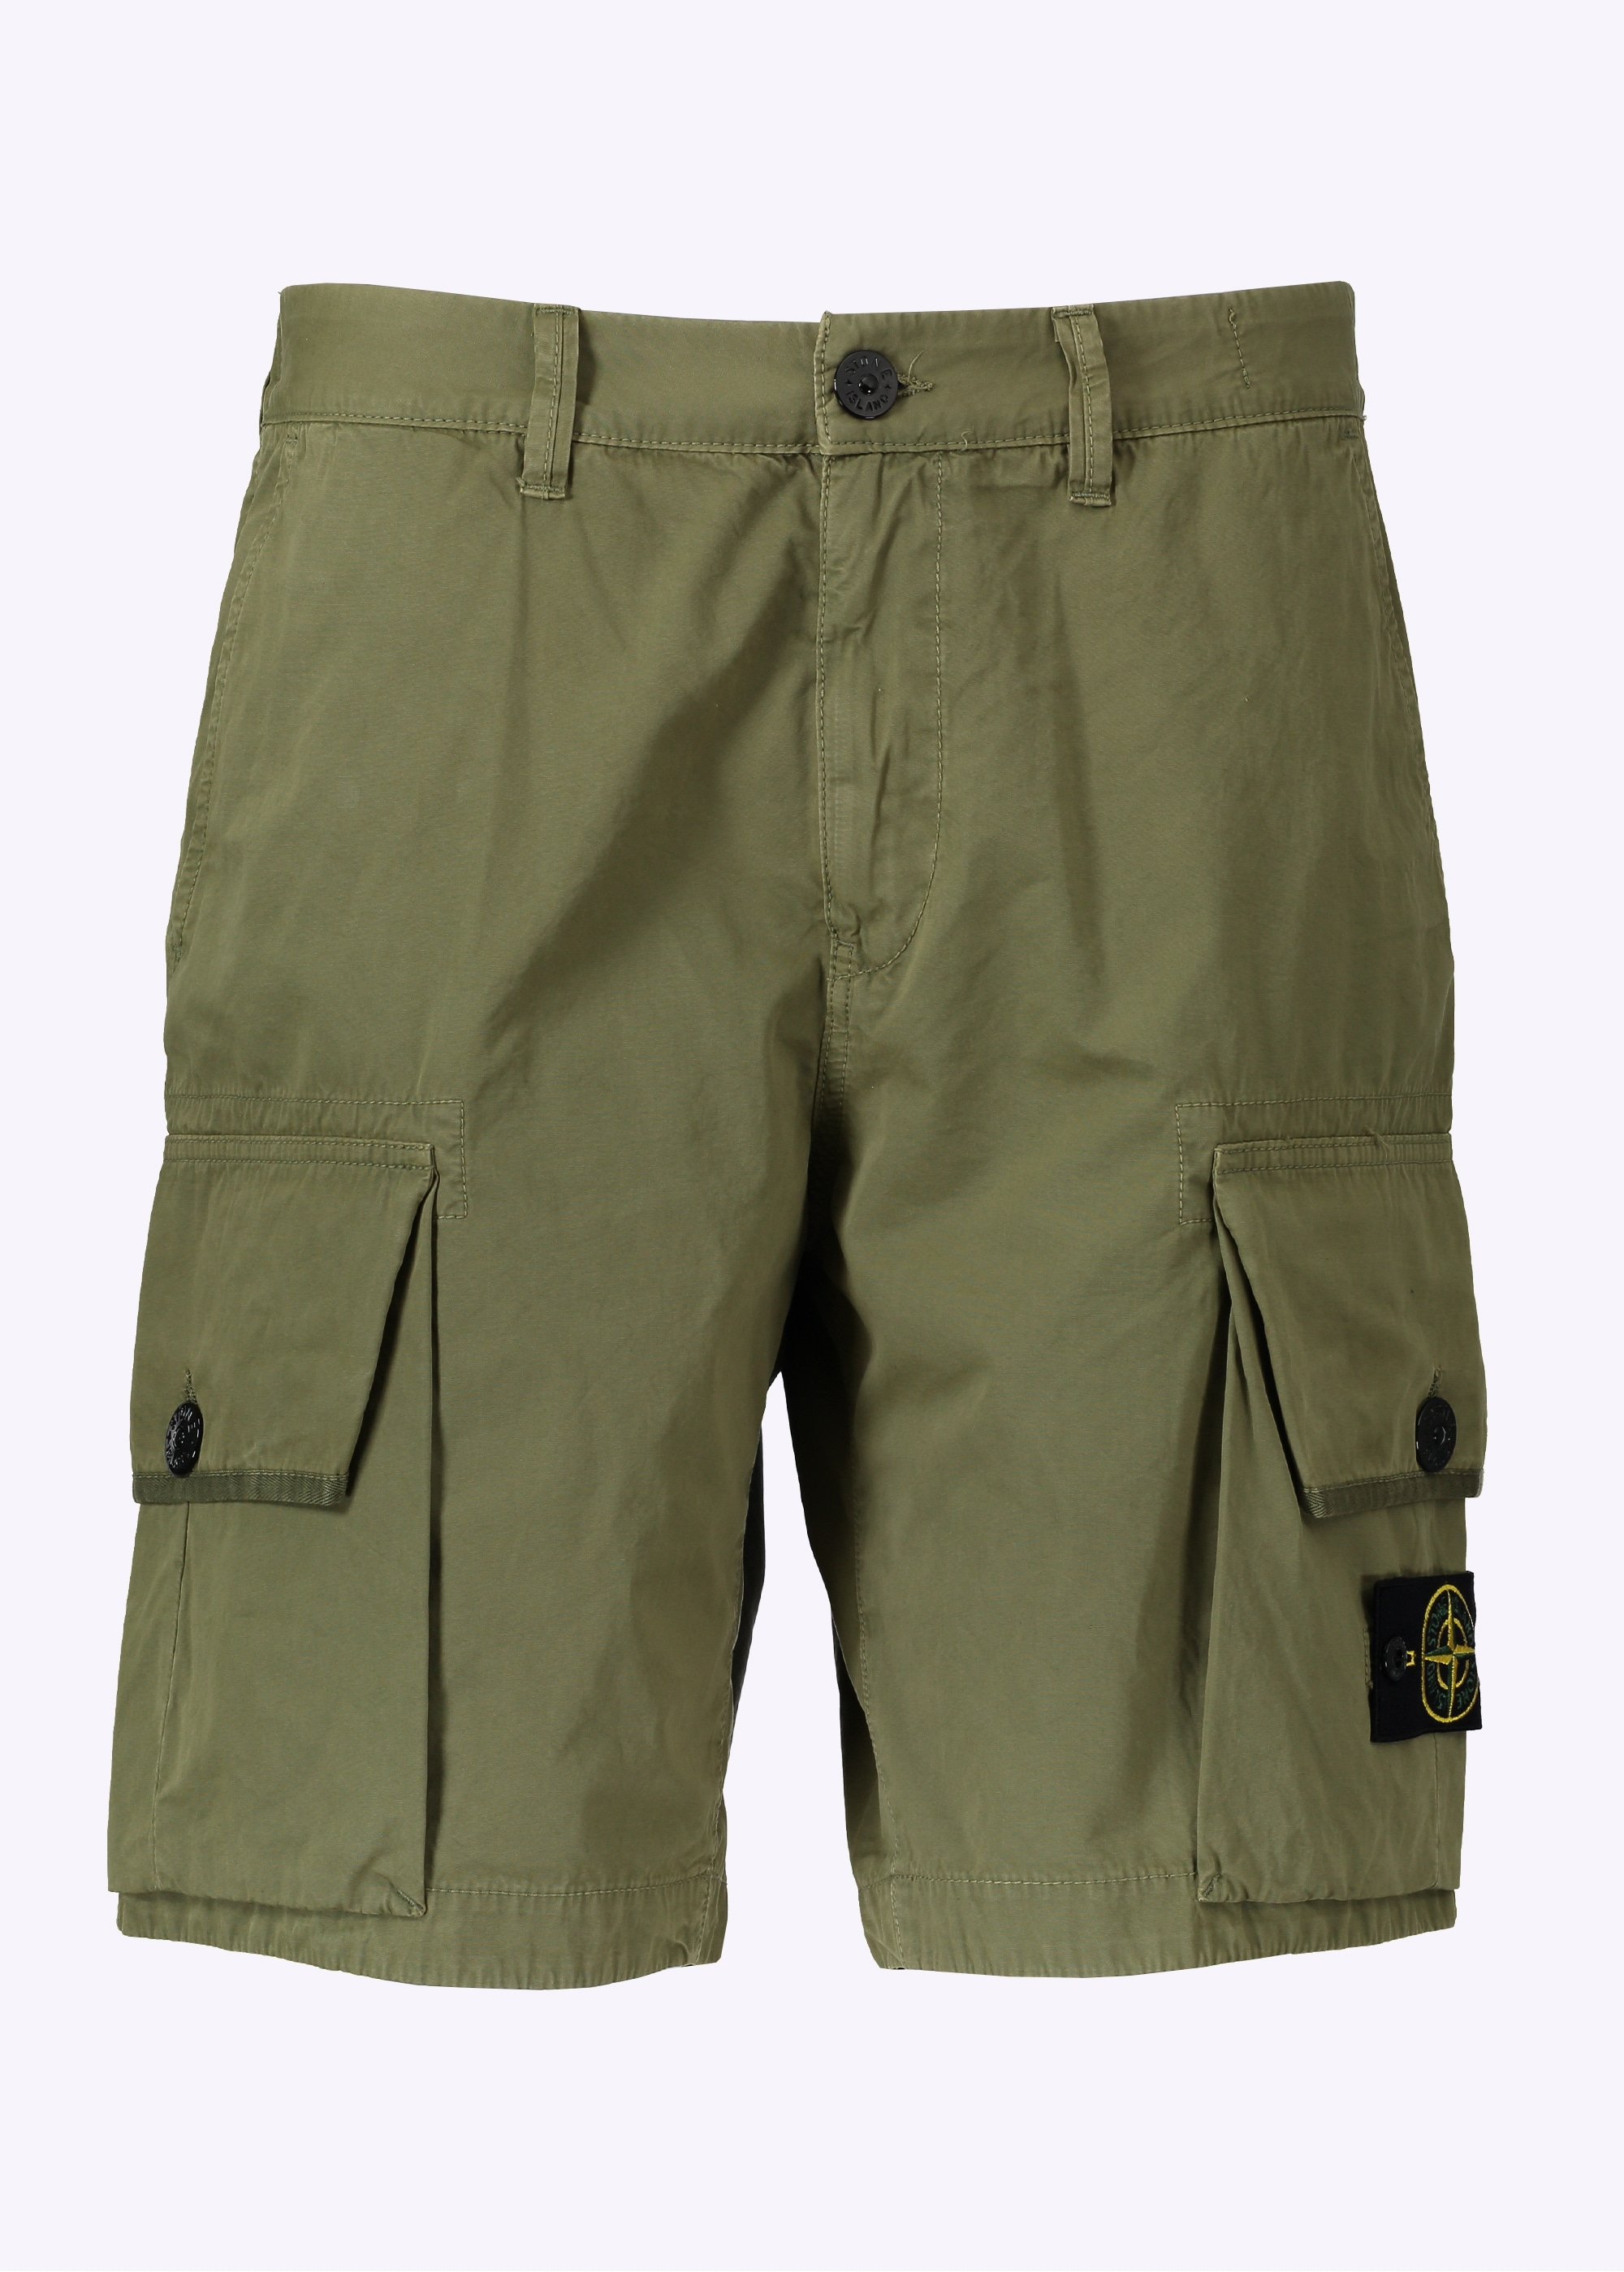 Stone Island Cargo Shorts - Military Green - Triads Mens from Triads UK ac54474f71d